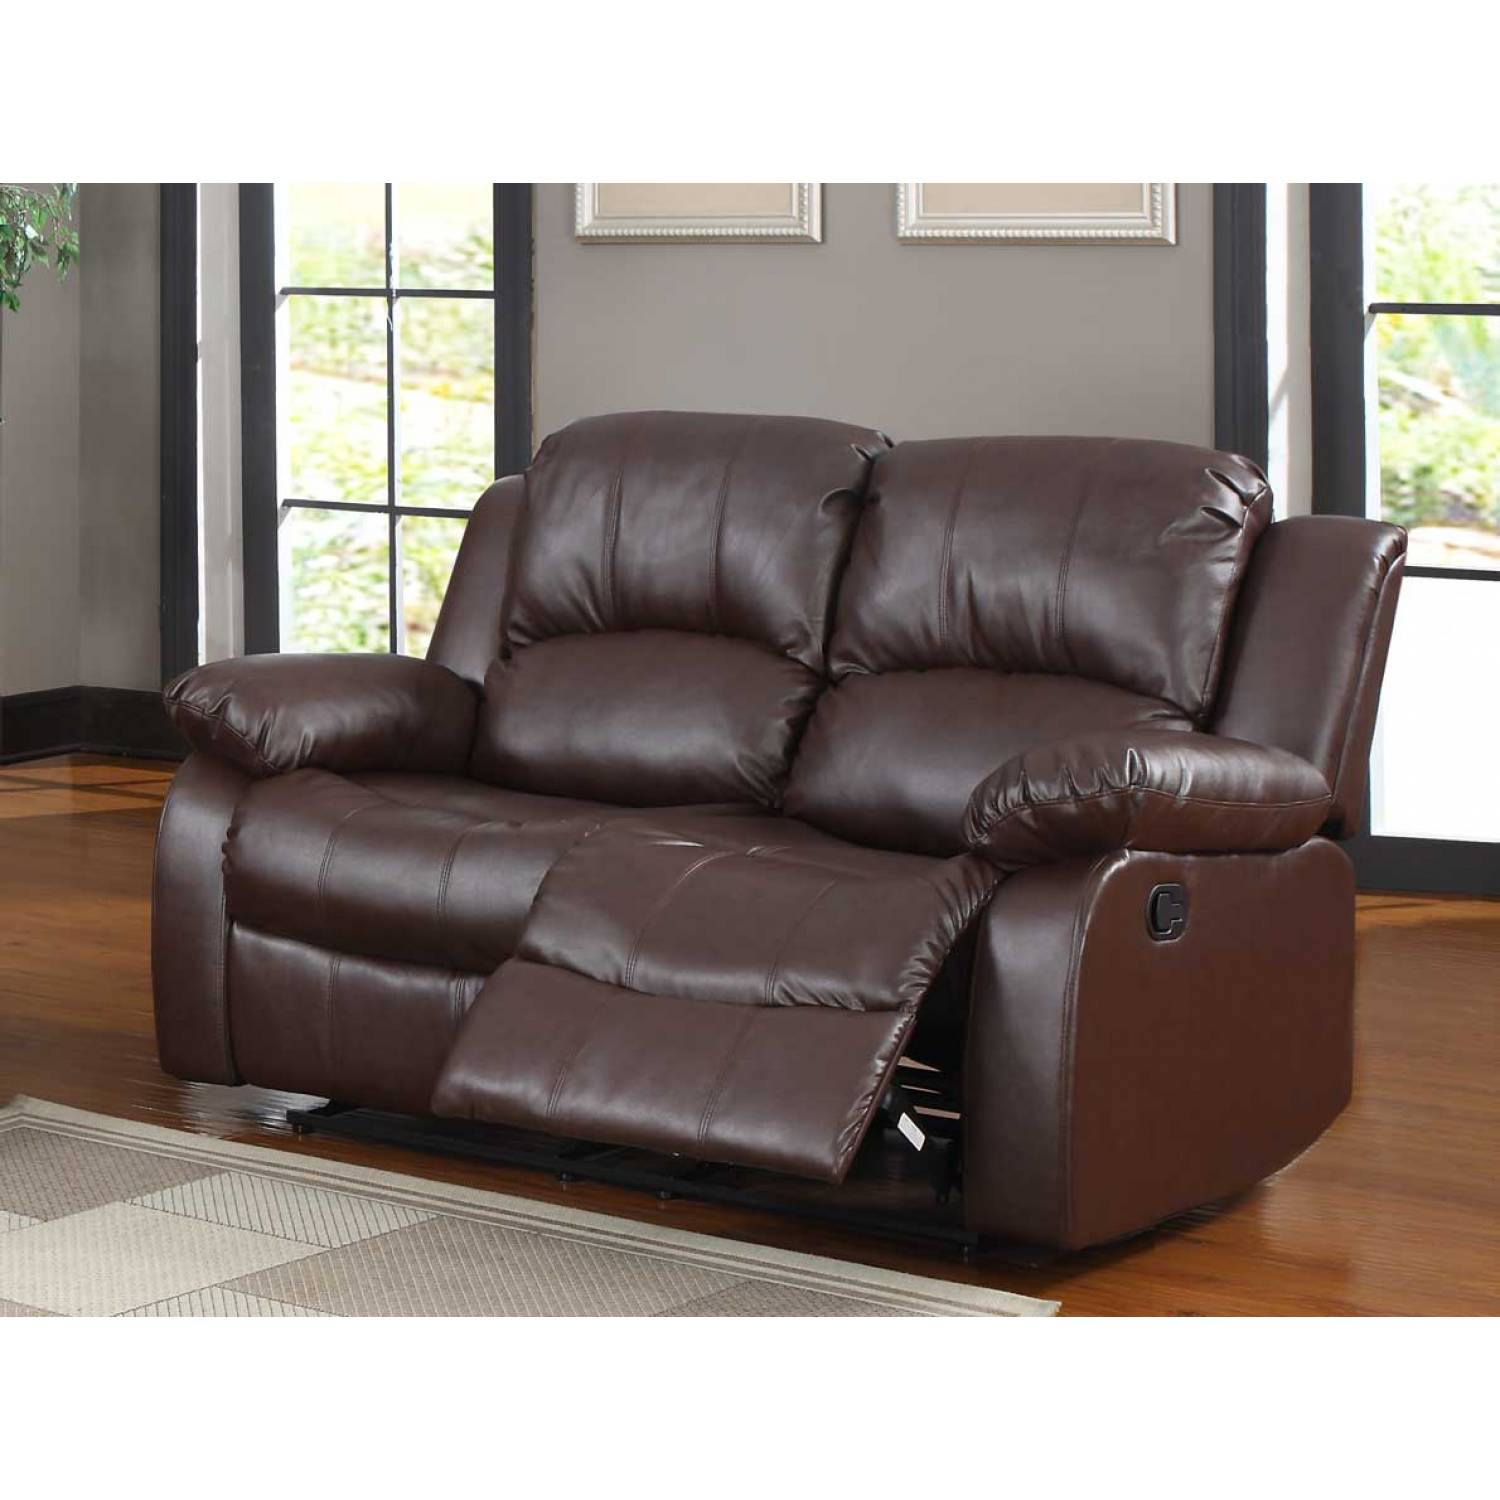 Cranley Double Reclining Love Seat Brown Bonded Leather